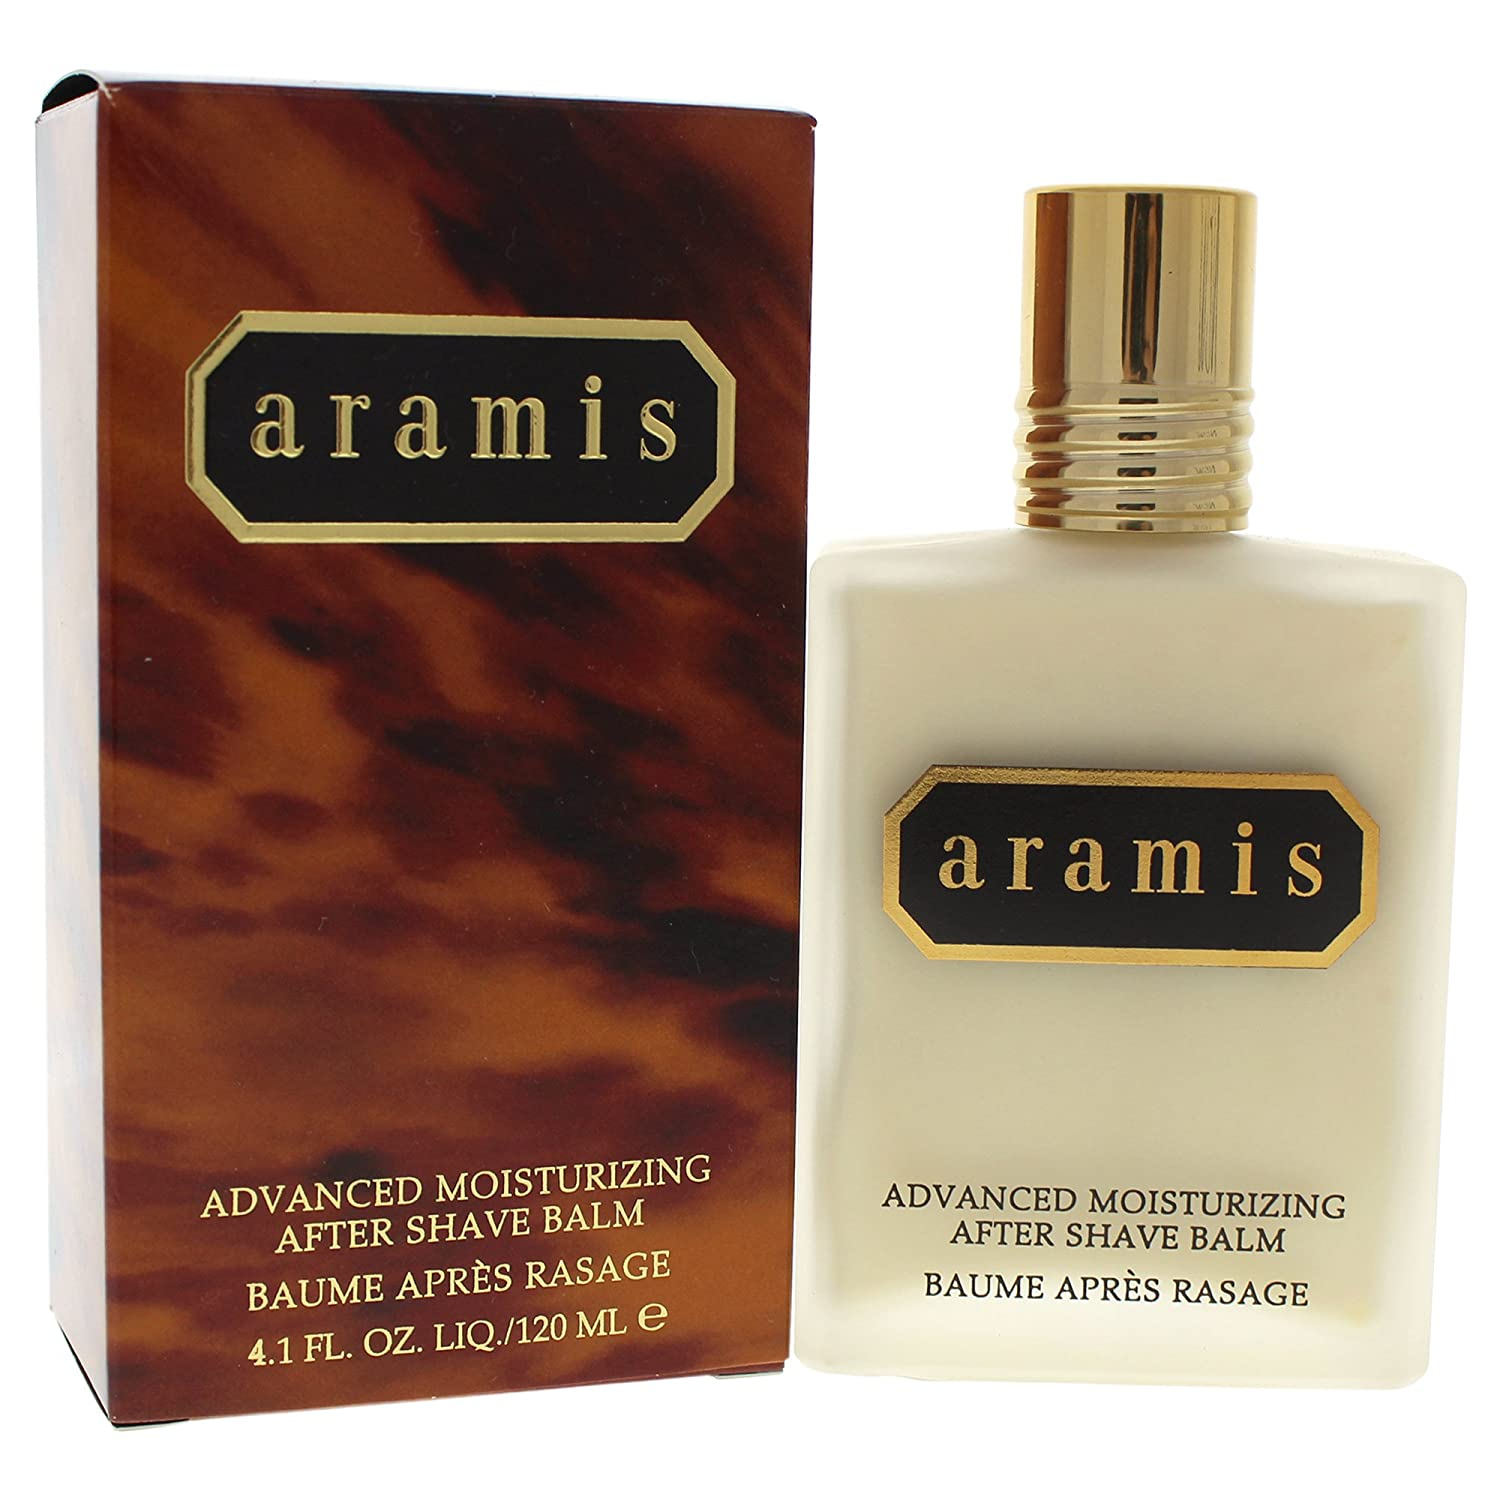 Aramis for Men Advanced Moisturizing Aftershave Balm 4.1-Ounce/120 Ml 180089